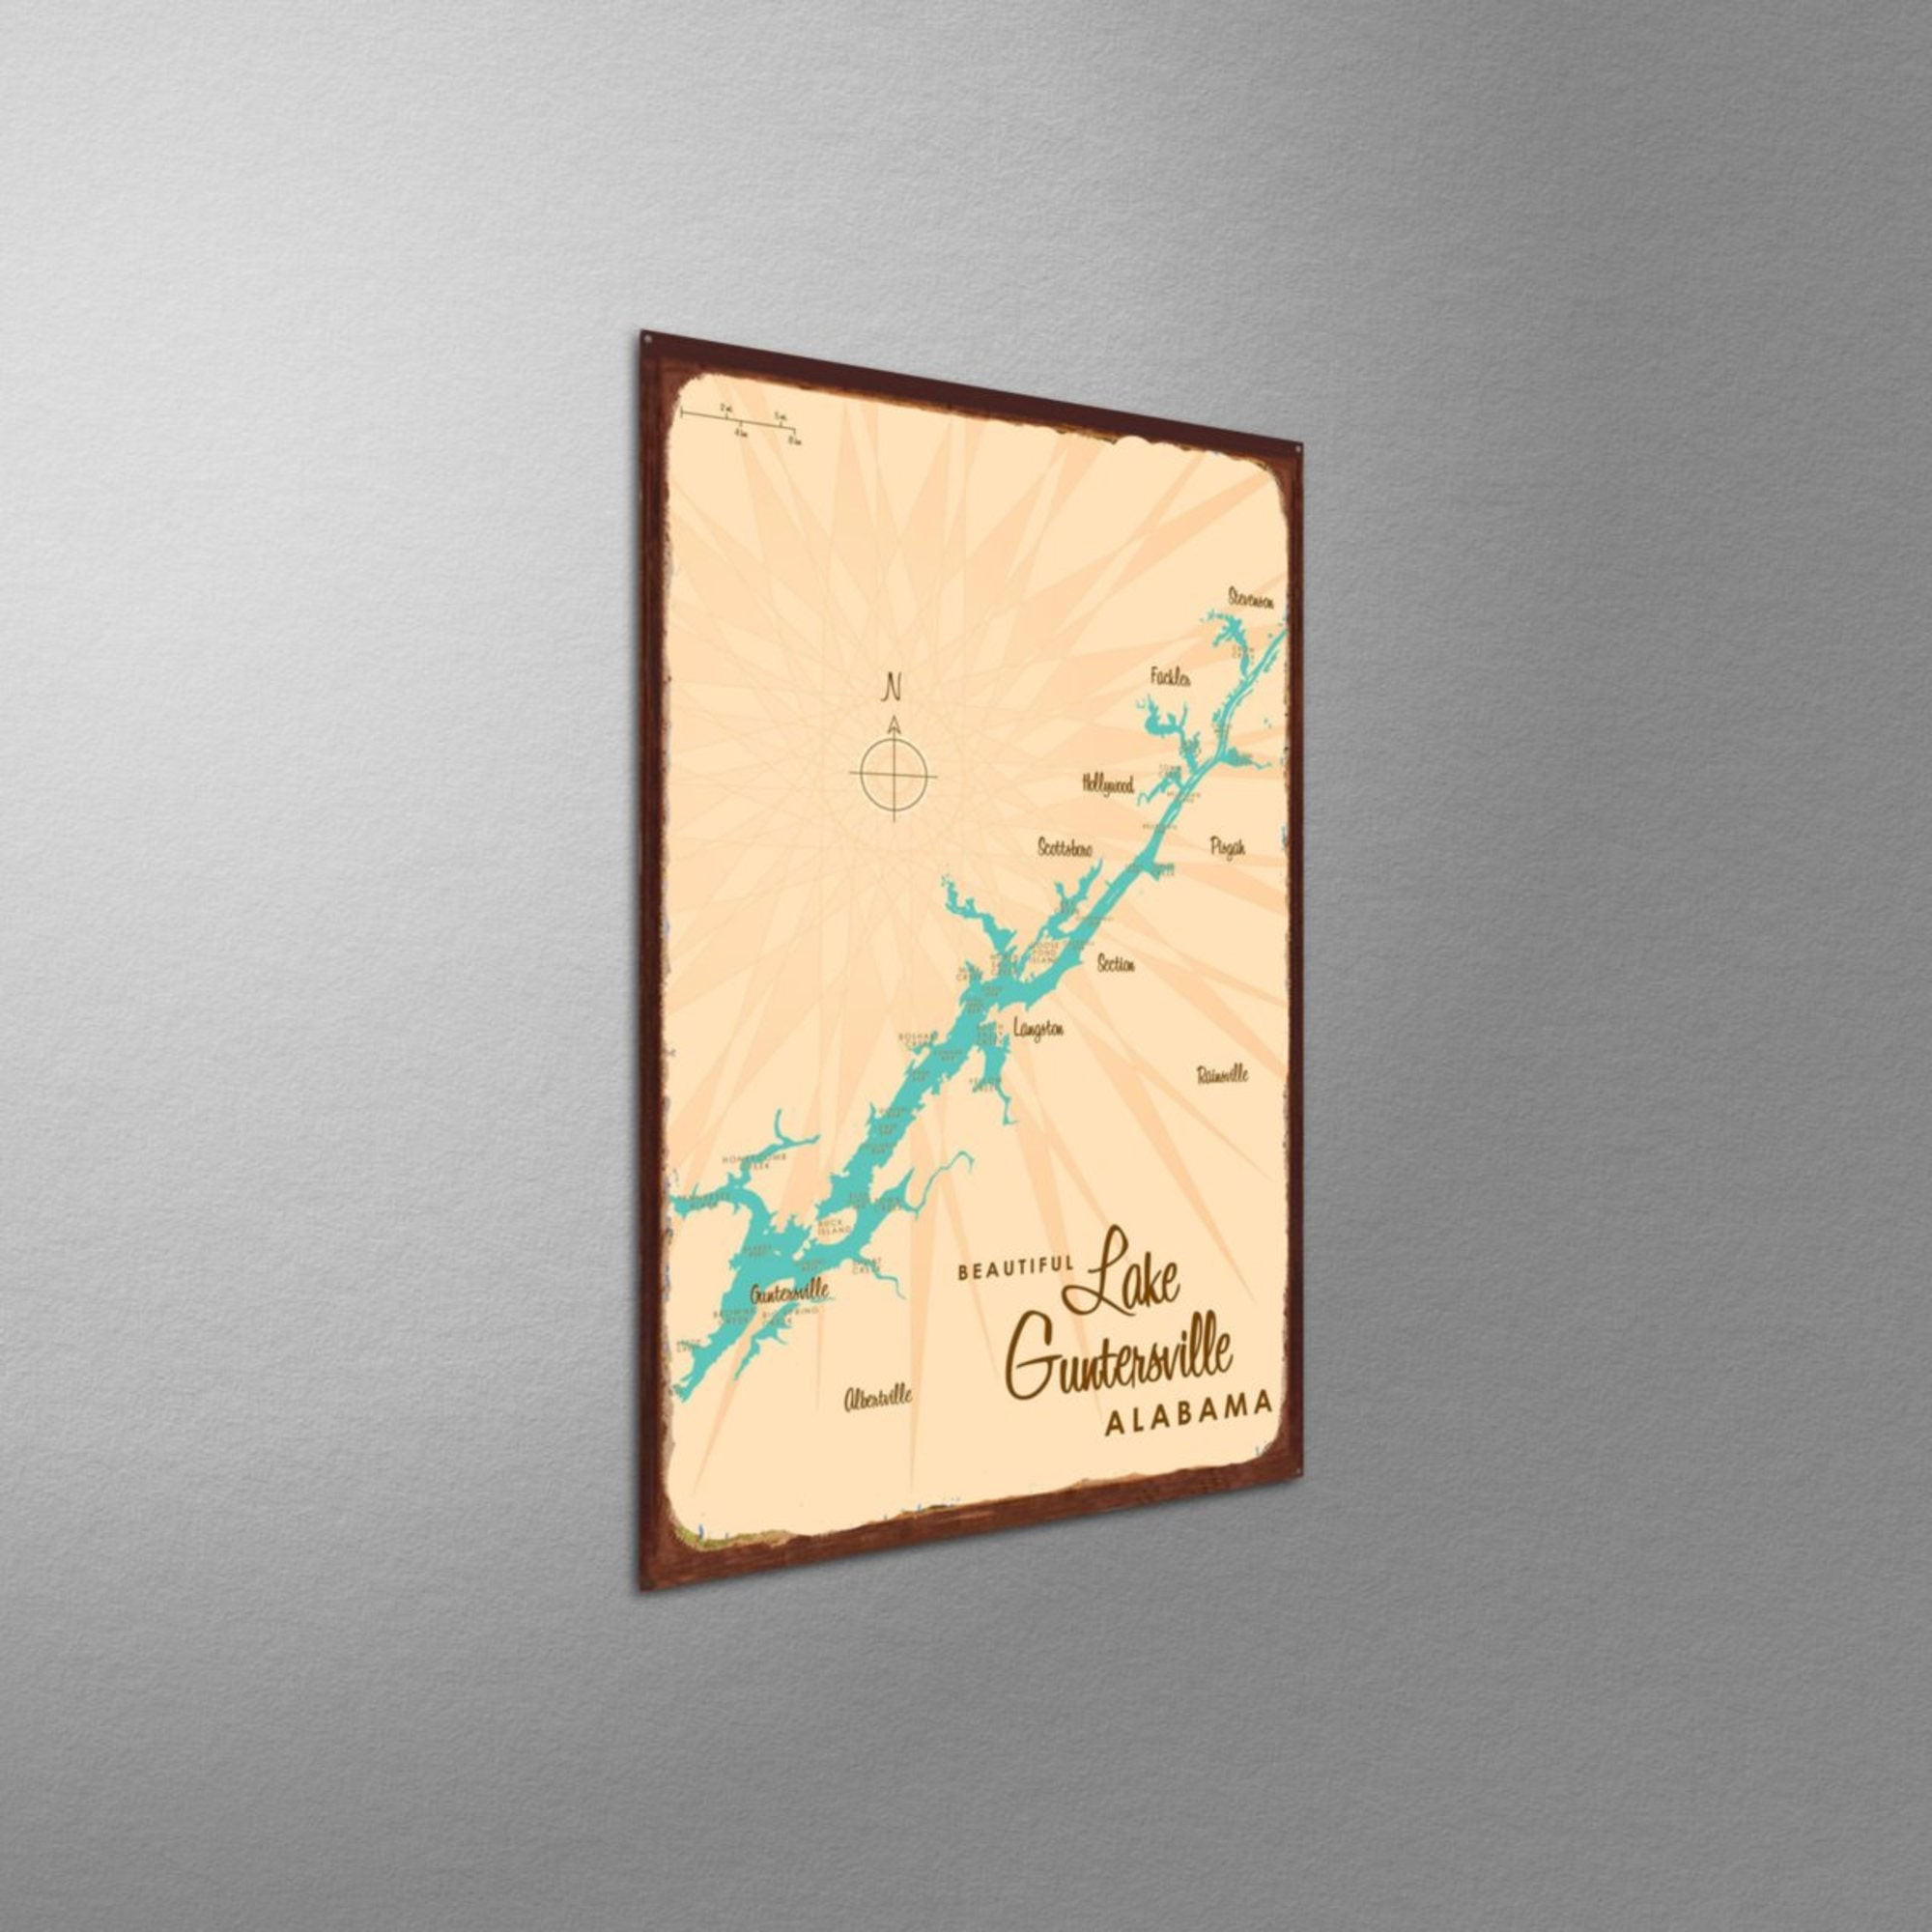 Lake Guntersville Alabama, Rustic Metal Sign Map Art